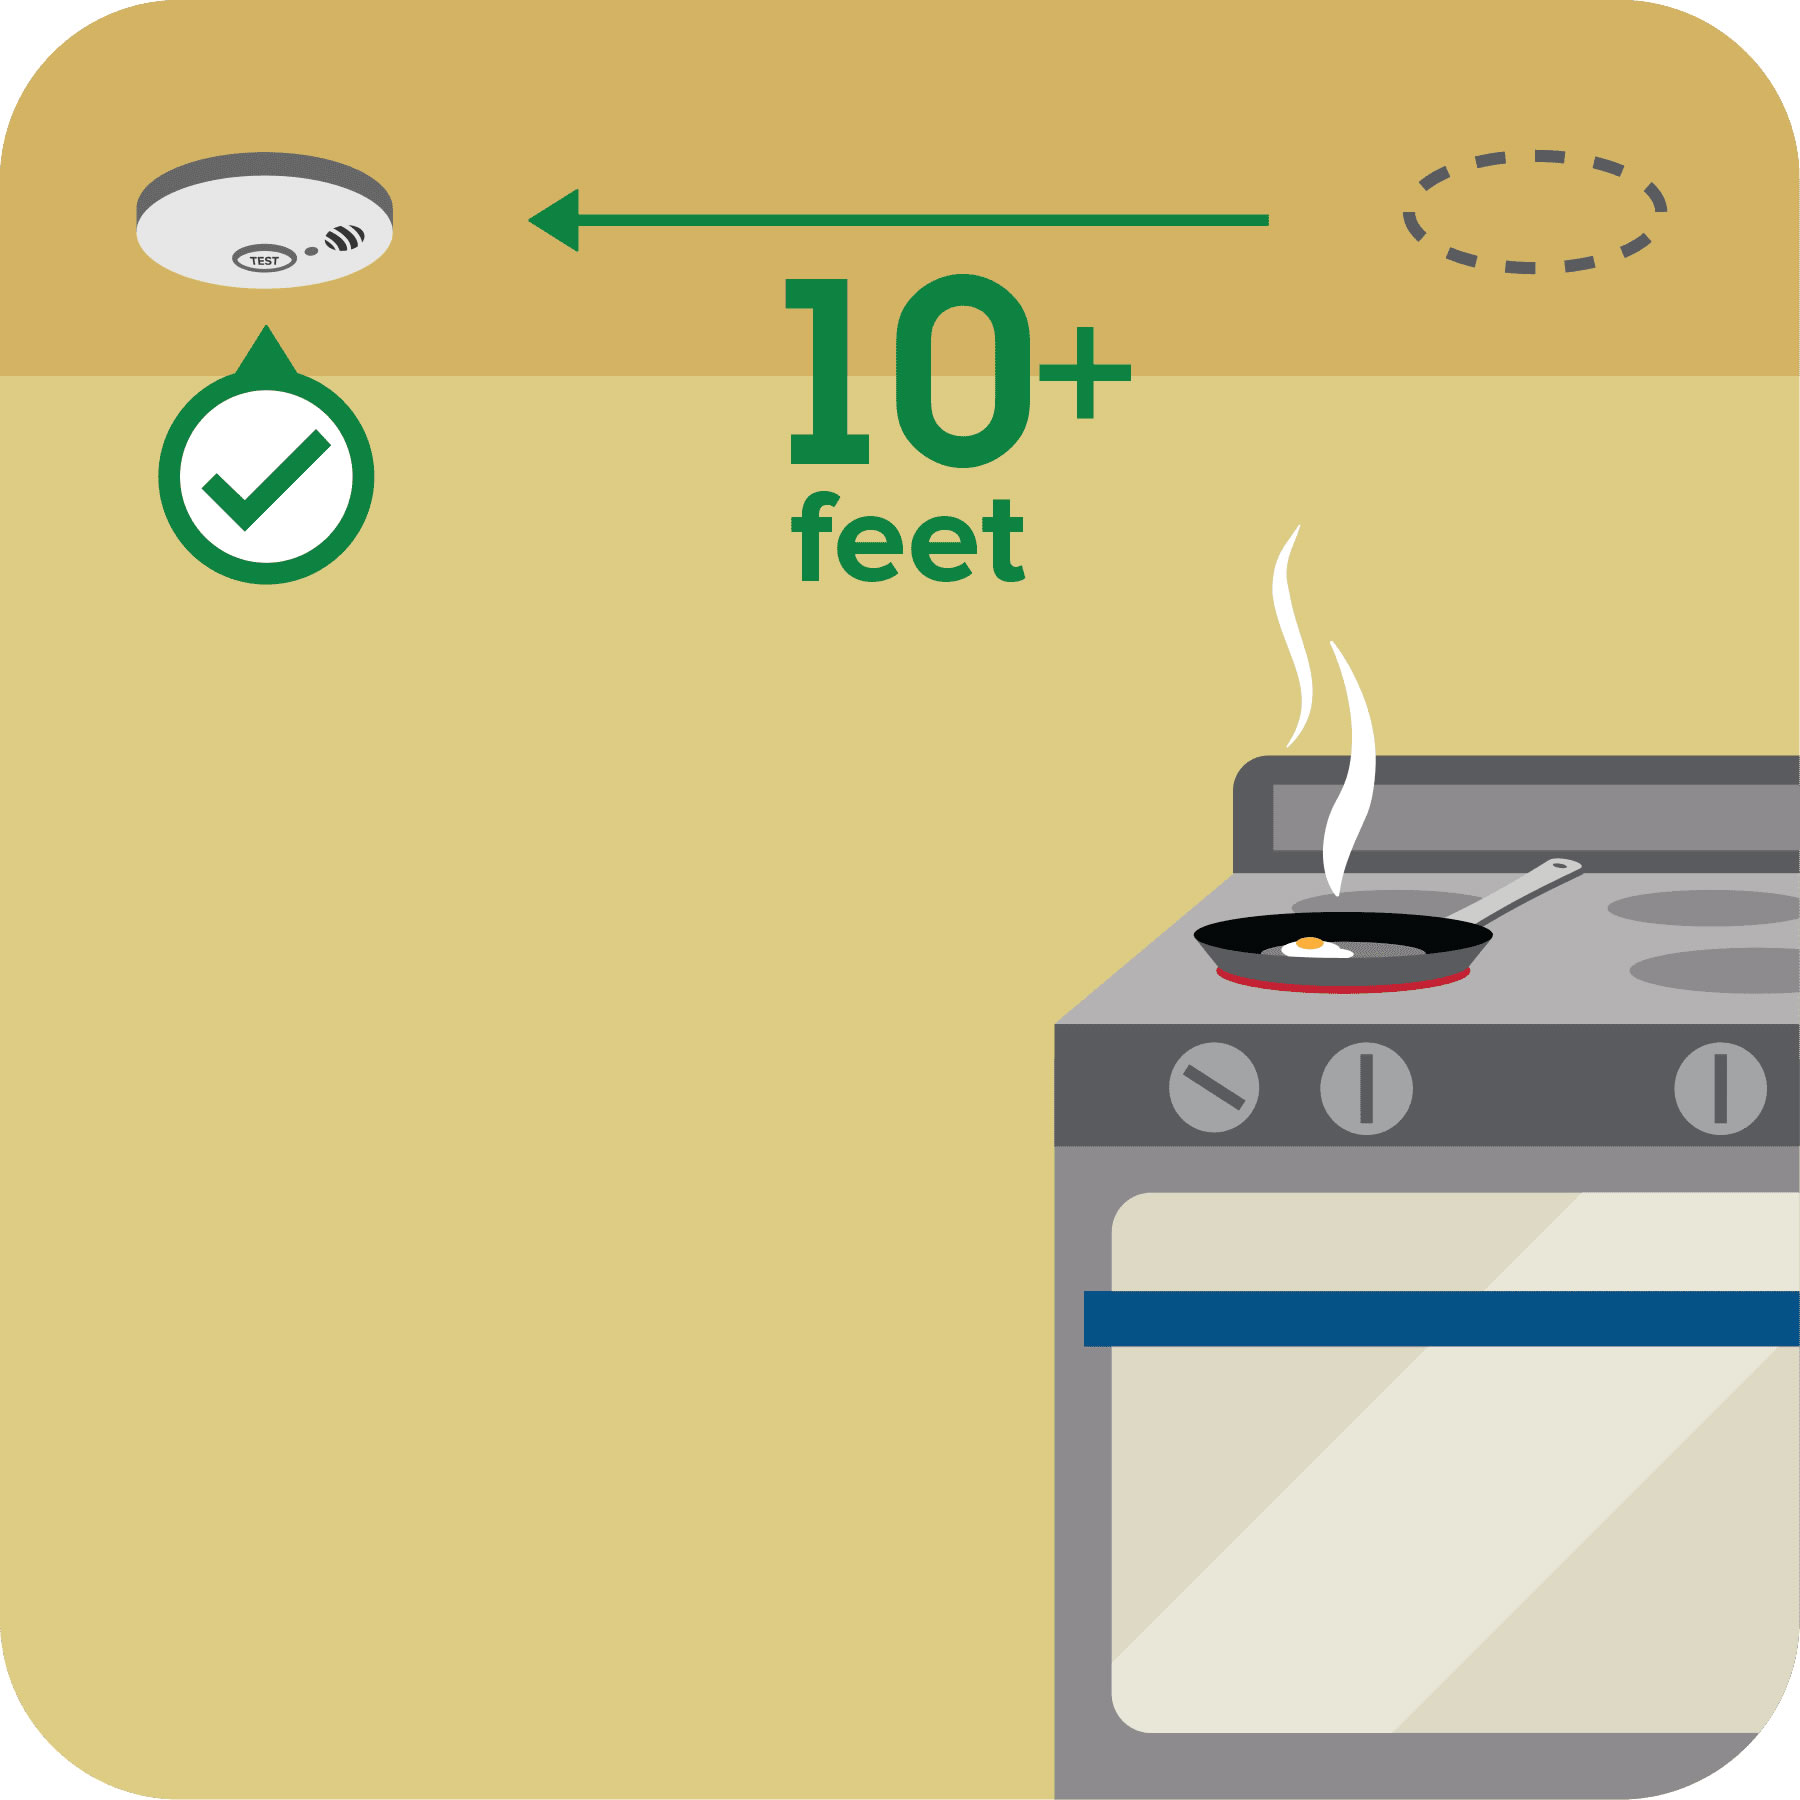 A smoke alarm is installed 10 feet away from a stove